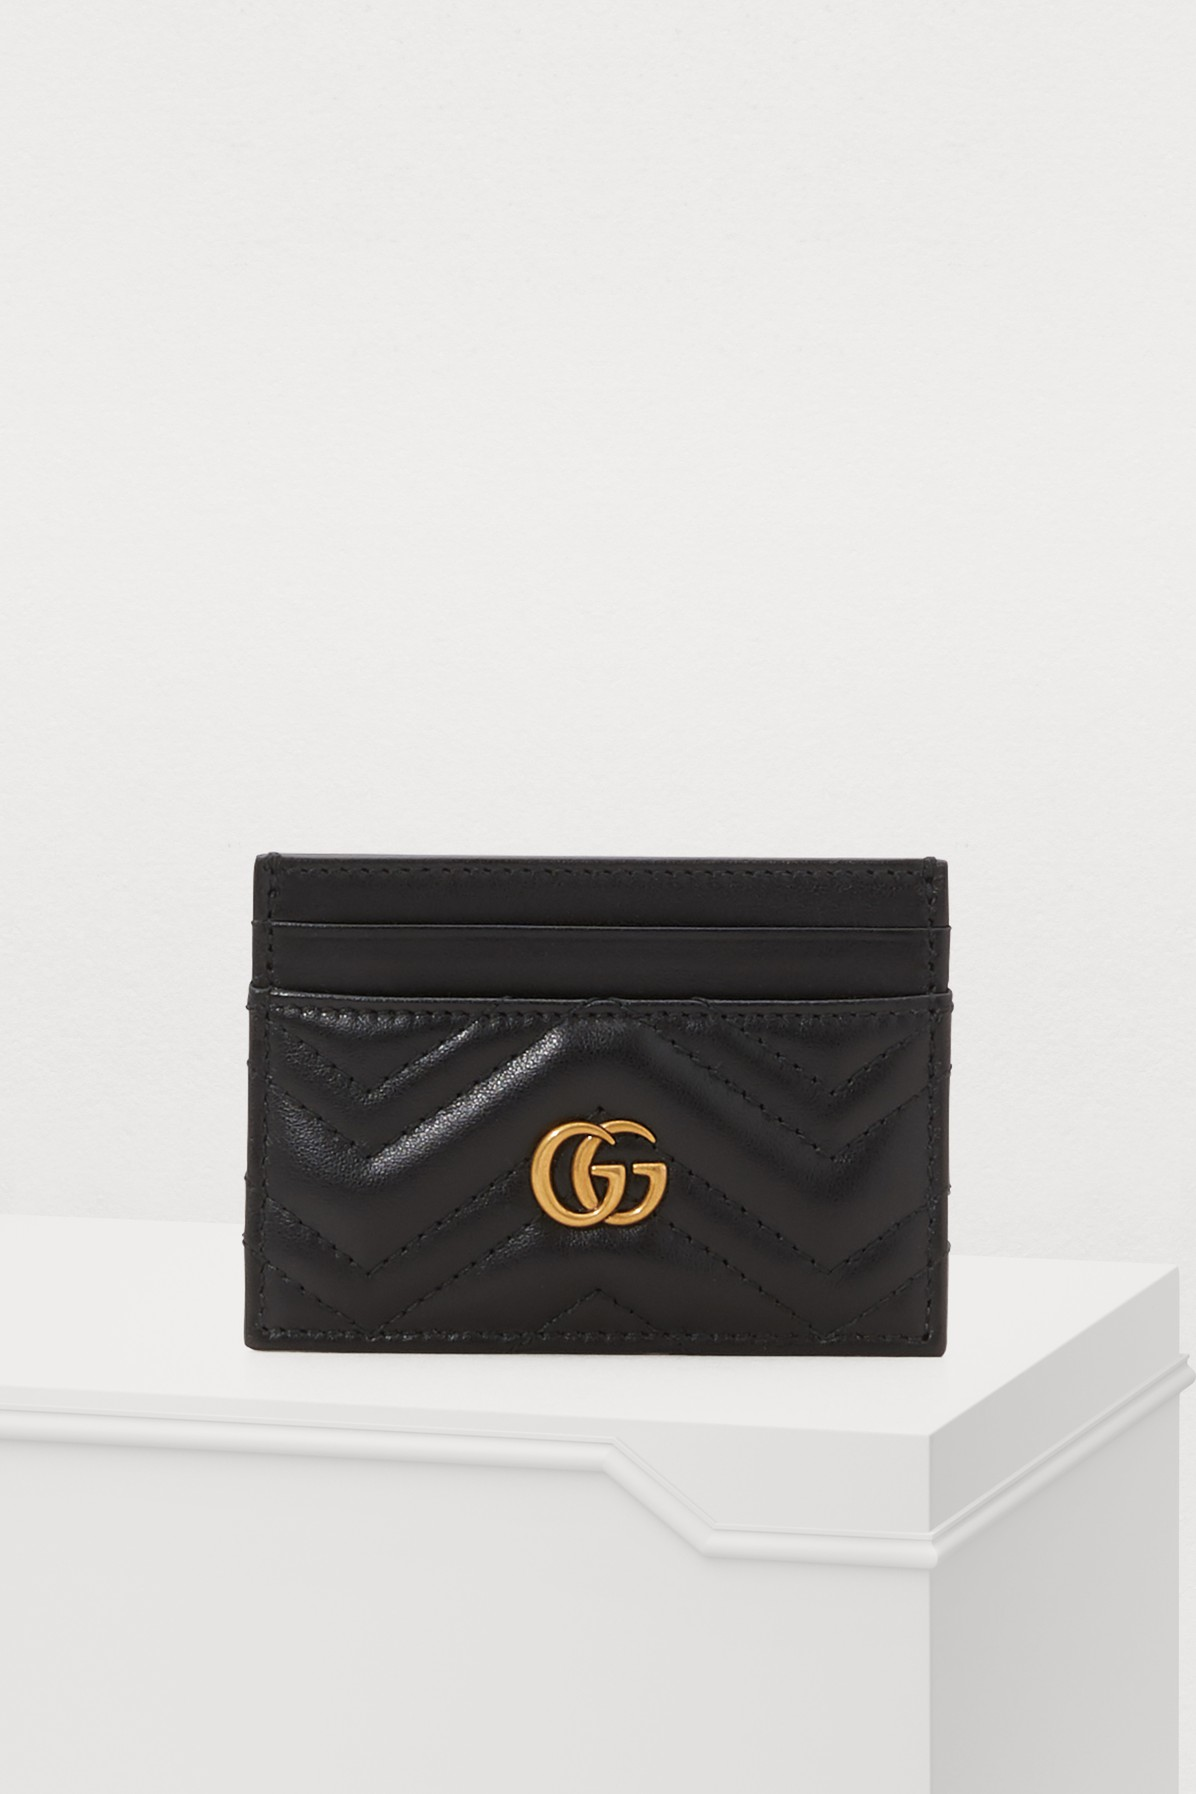 Gg Marmont Black Leather Card Holder